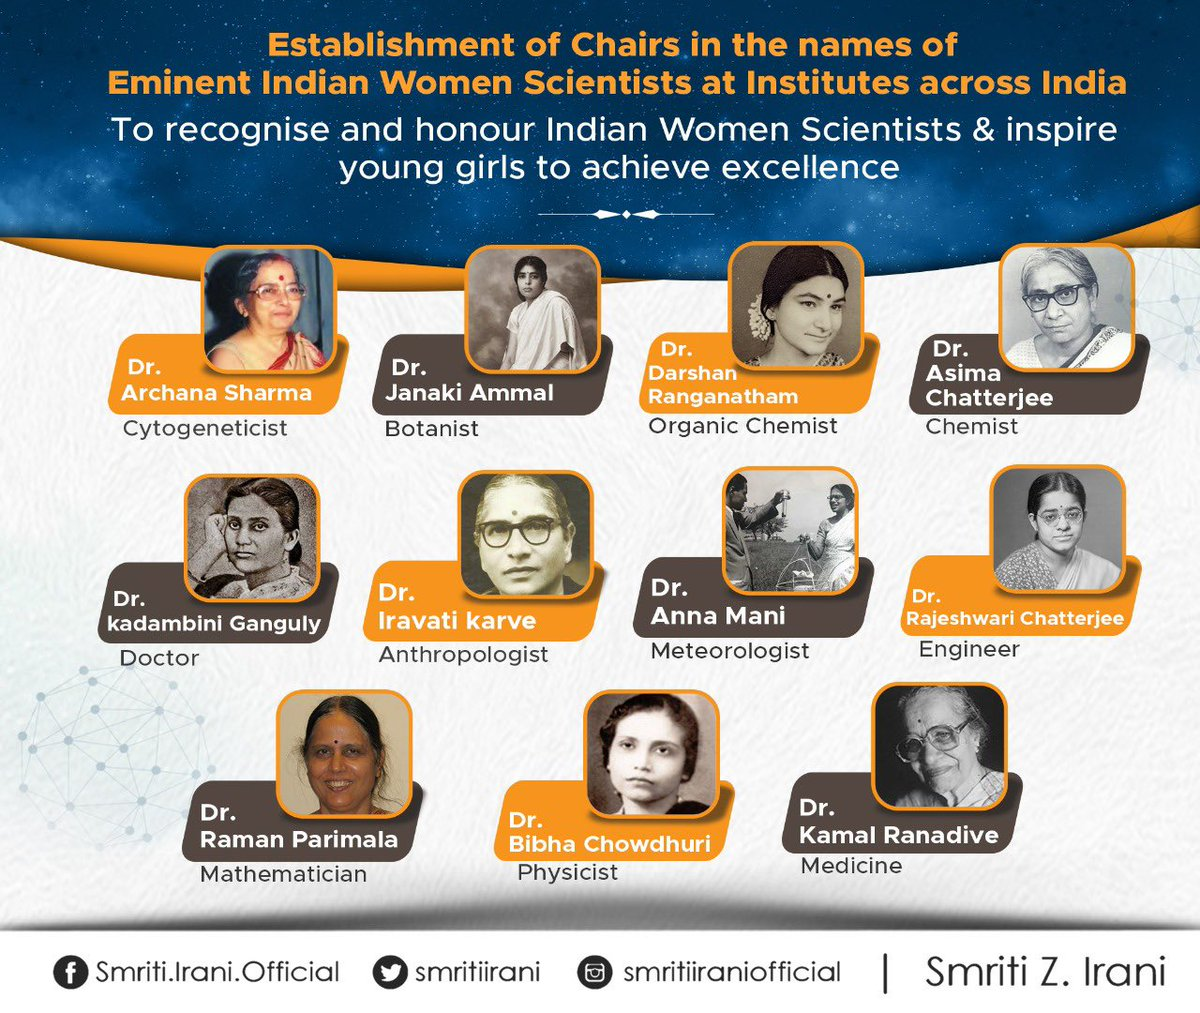 On National Science Day, @MinistryWCD is pleased to announce Establishment of 11 Chairs in the names of Indian Women Scientists at Institutes across the country. Under PM @narendramodi Ji's leadership, we're committed to recognize & encourage Indian women in the field of science.